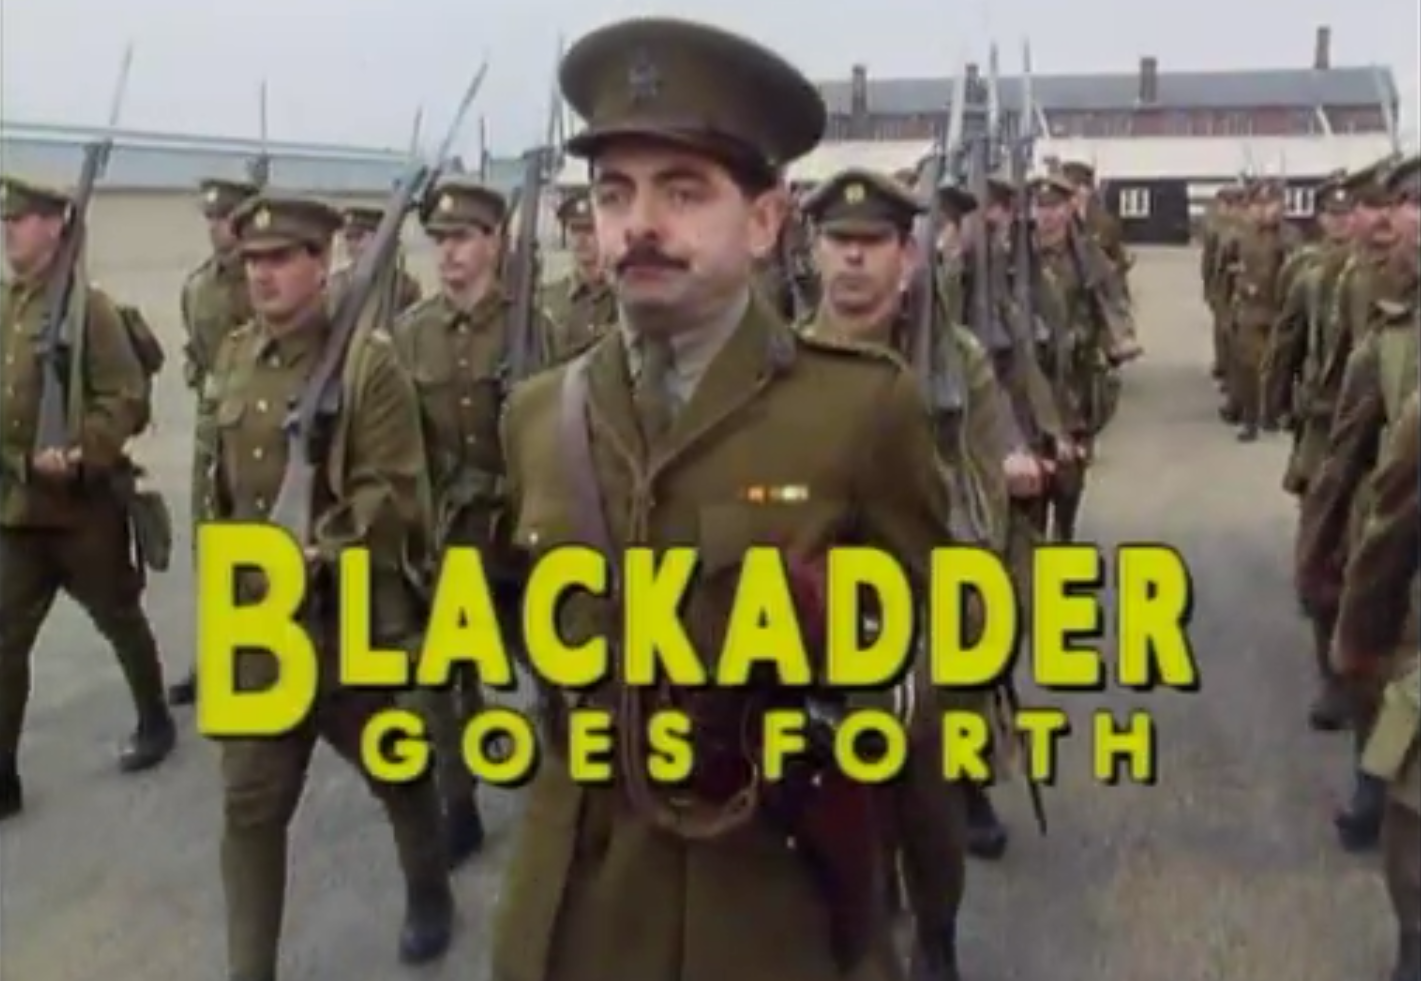 Blackadder goes forth essay